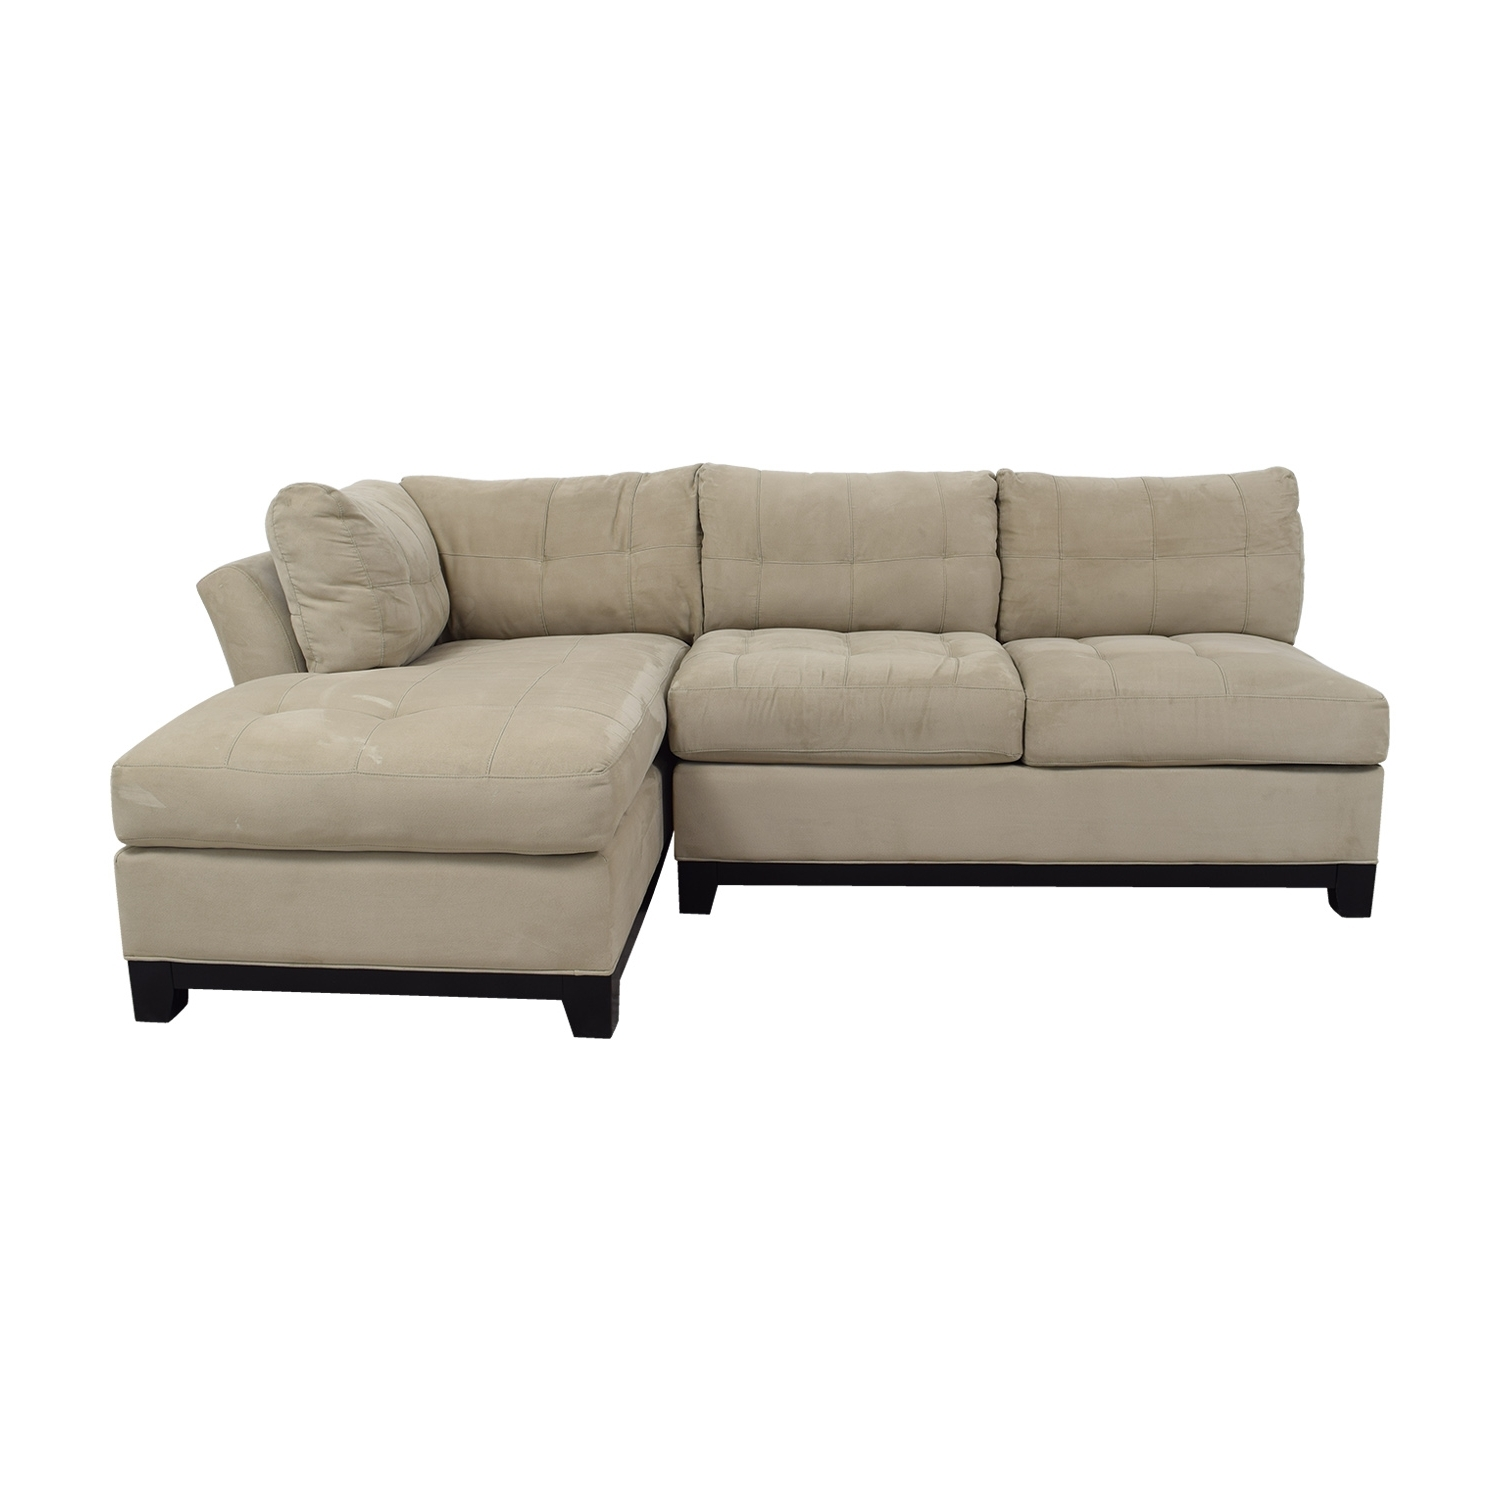 [%83% Off – Raymour & Flannigan Raymour & Flanigan Cindy Crawford With Regard To Best And Newest Sectional Sofas At Raymour And Flanigan|Sectional Sofas At Raymour And Flanigan With Regard To Most Up To Date 83% Off – Raymour & Flannigan Raymour & Flanigan Cindy Crawford|Recent Sectional Sofas At Raymour And Flanigan Pertaining To 83% Off – Raymour & Flannigan Raymour & Flanigan Cindy Crawford|Current 83% Off – Raymour & Flannigan Raymour & Flanigan Cindy Crawford With Regard To Sectional Sofas At Raymour And Flanigan%] (View 9 of 15)